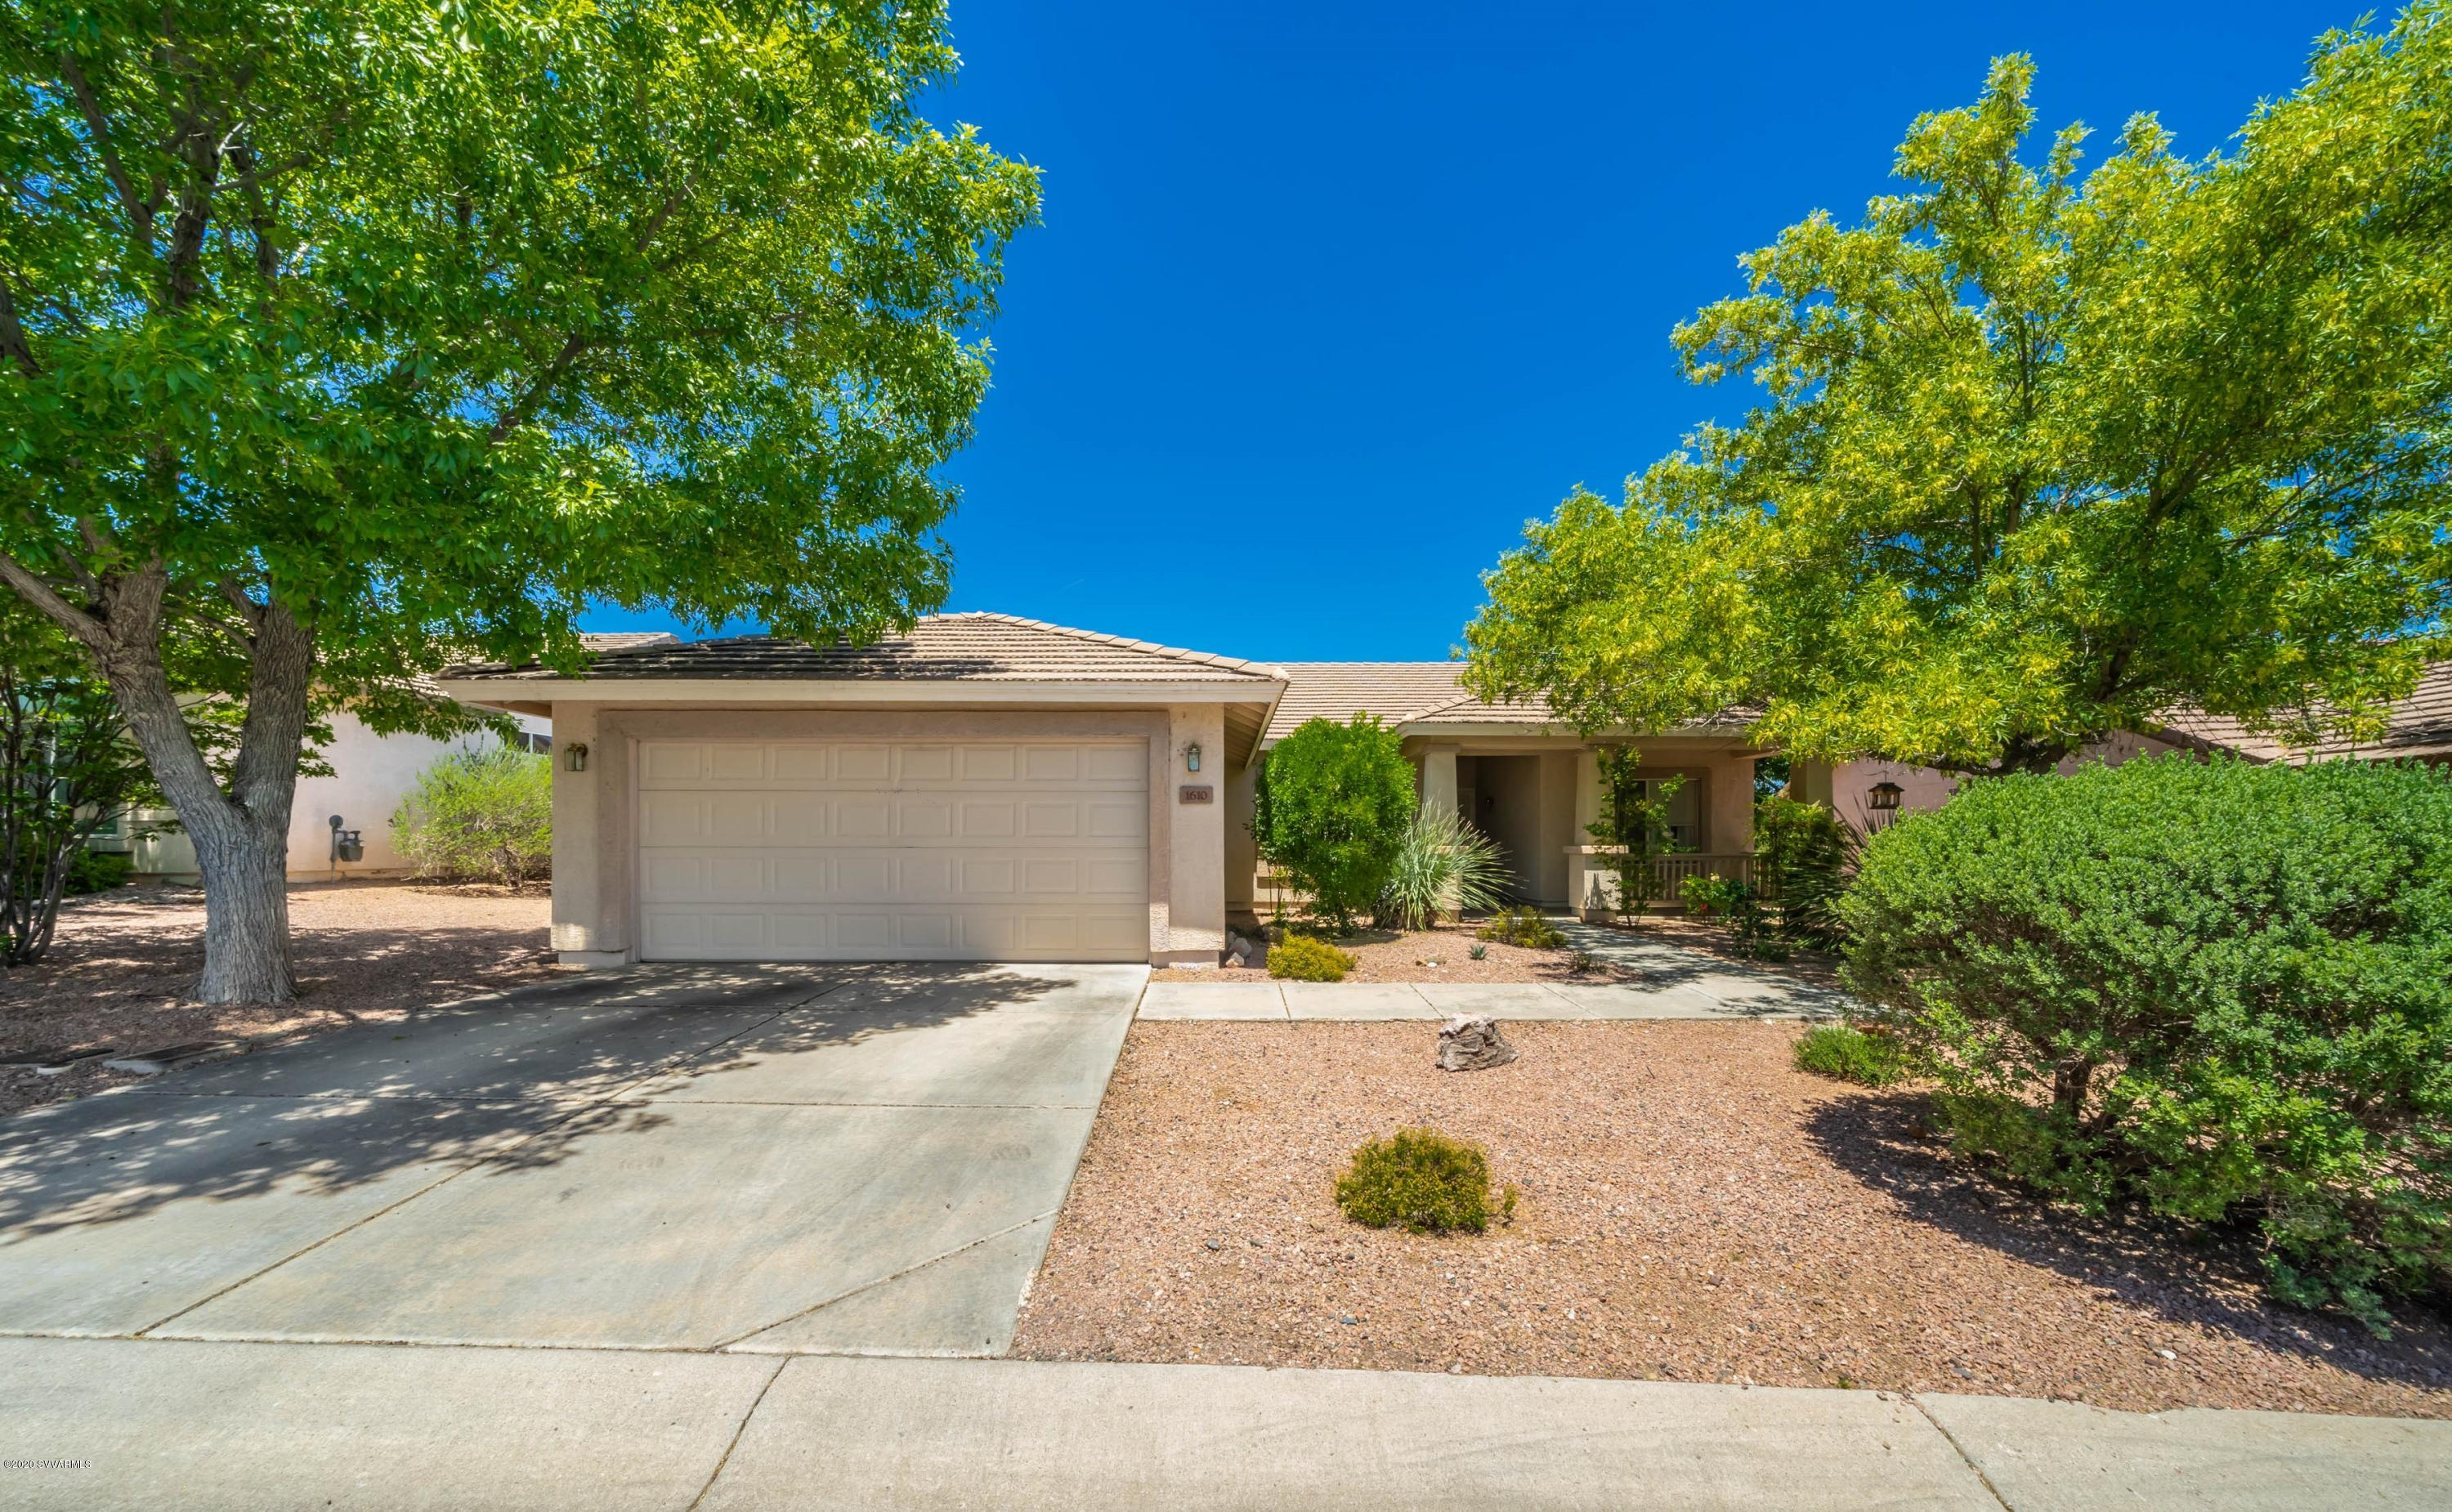 1610 W Wagon Wheel Rd Cottonwood, AZ 86326